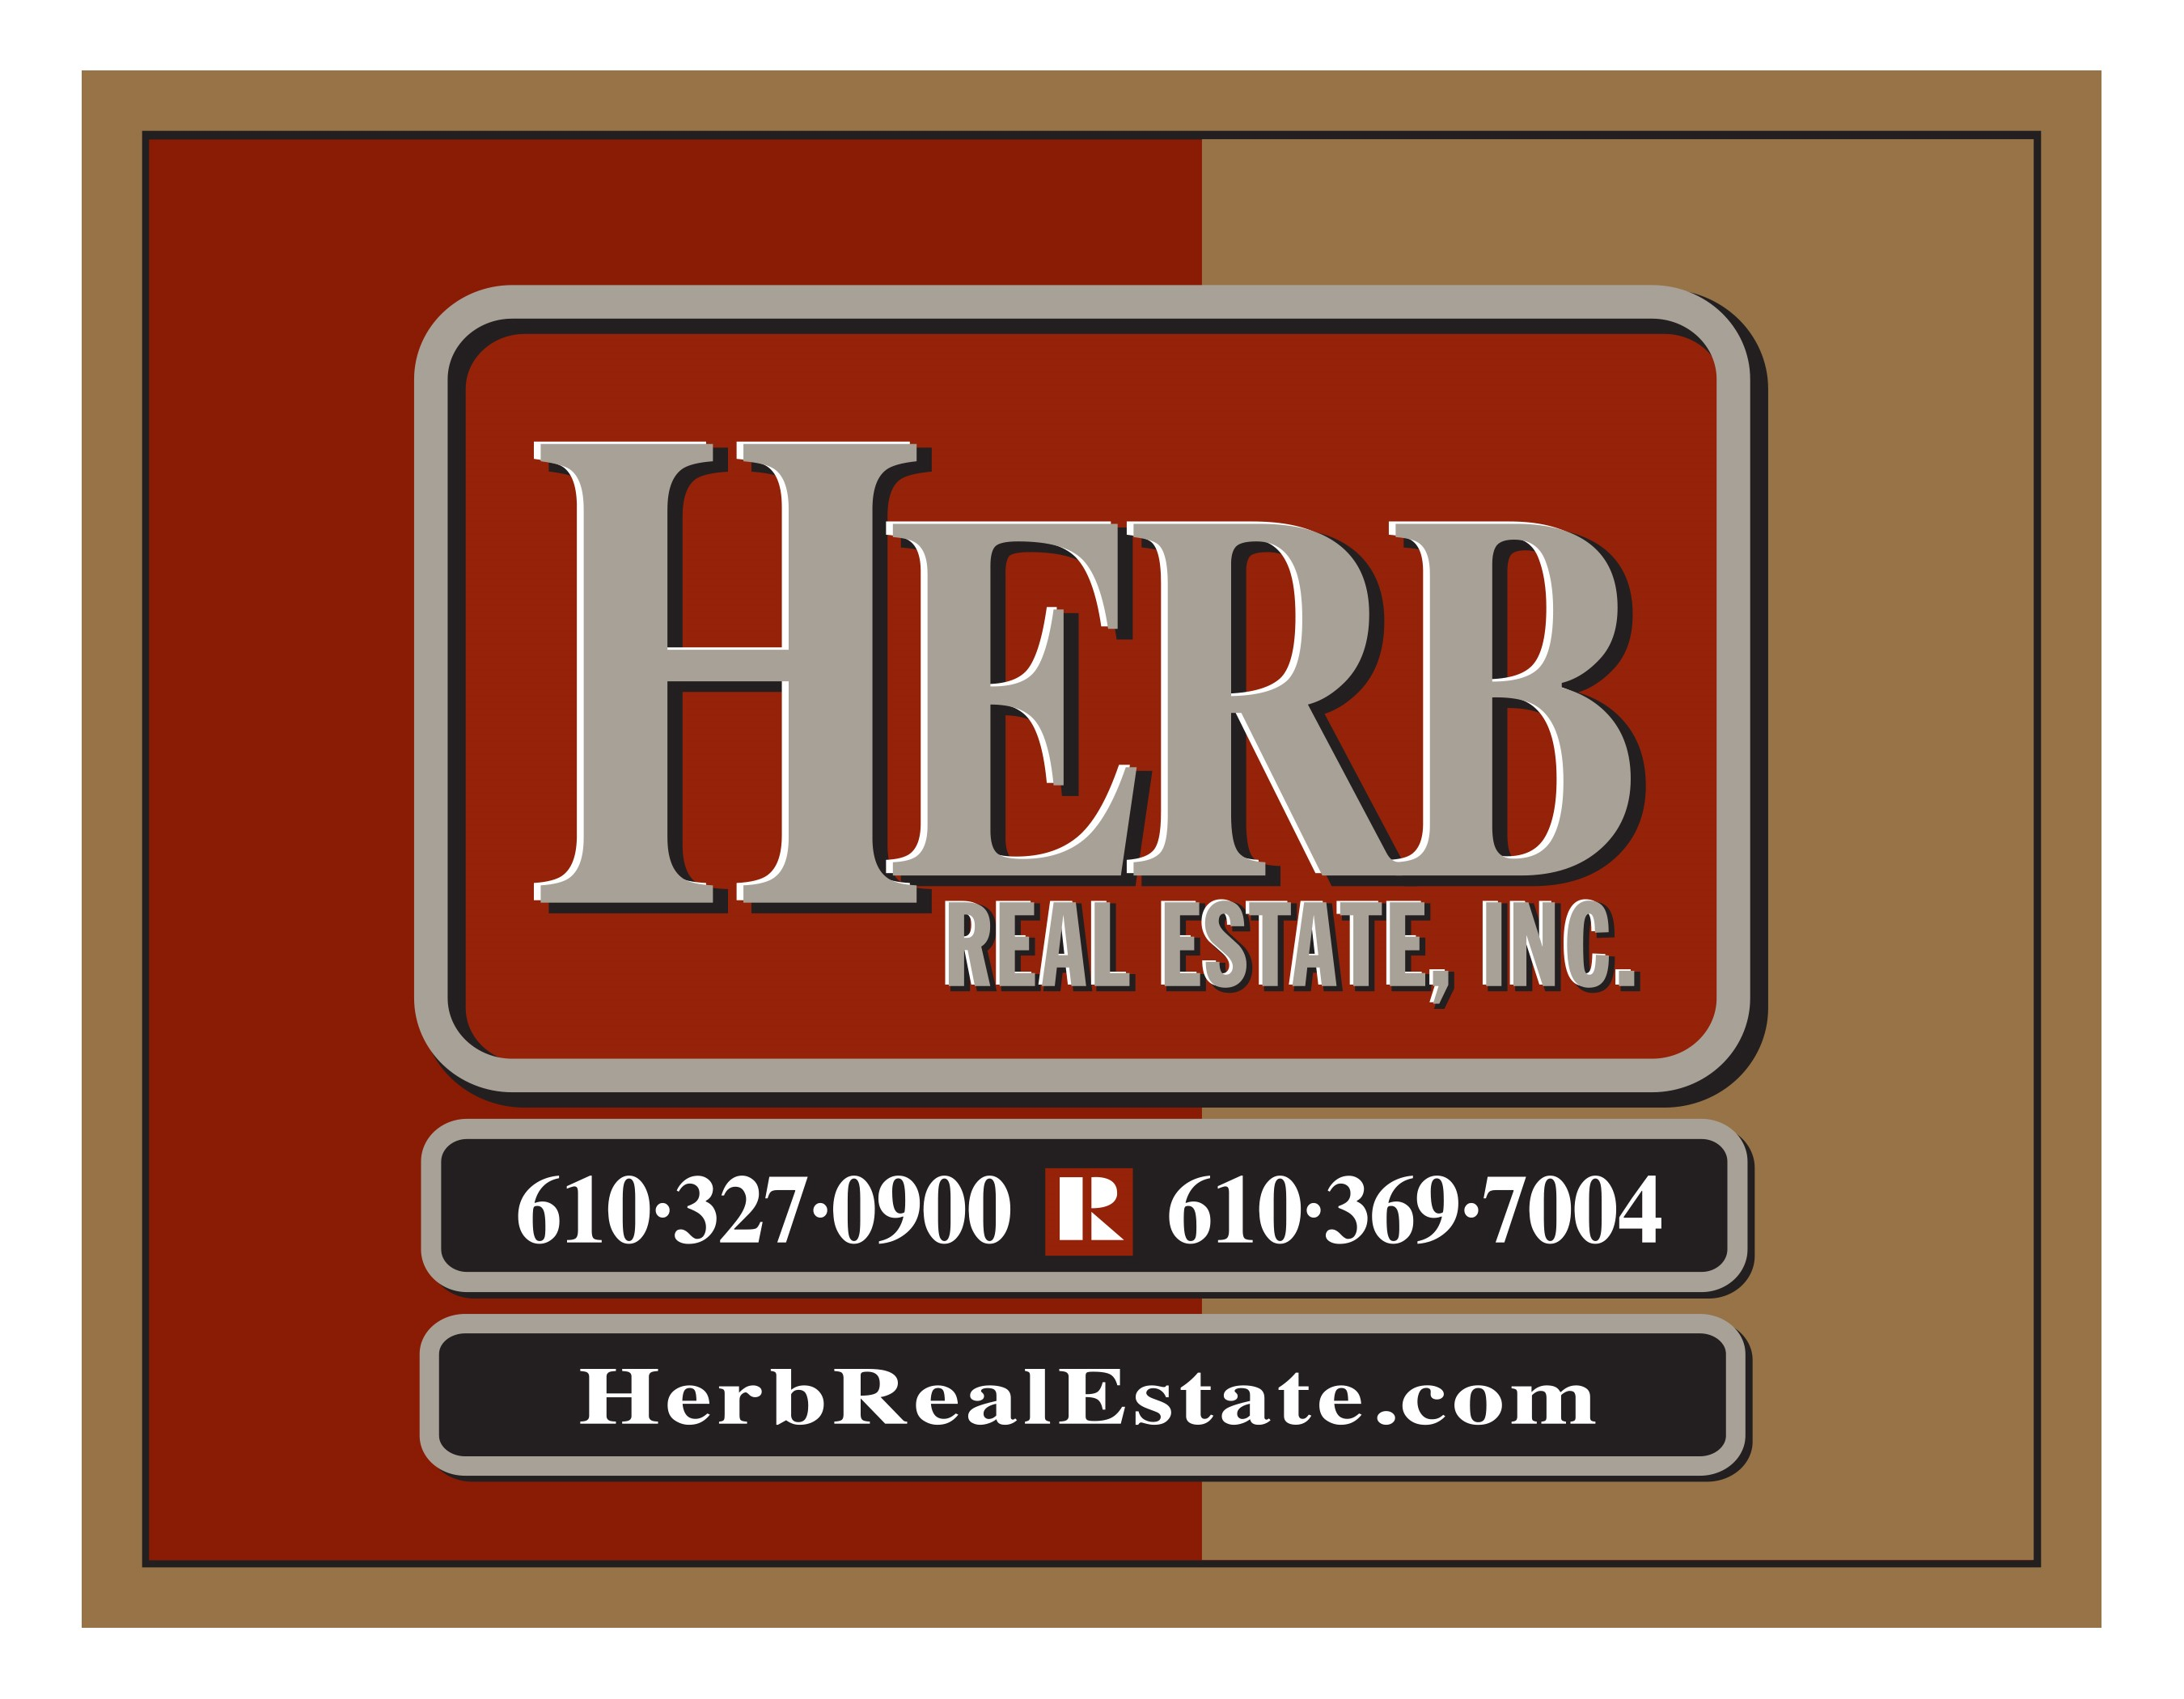 homes for sale, boyertown area, boyertown schools, townhomes